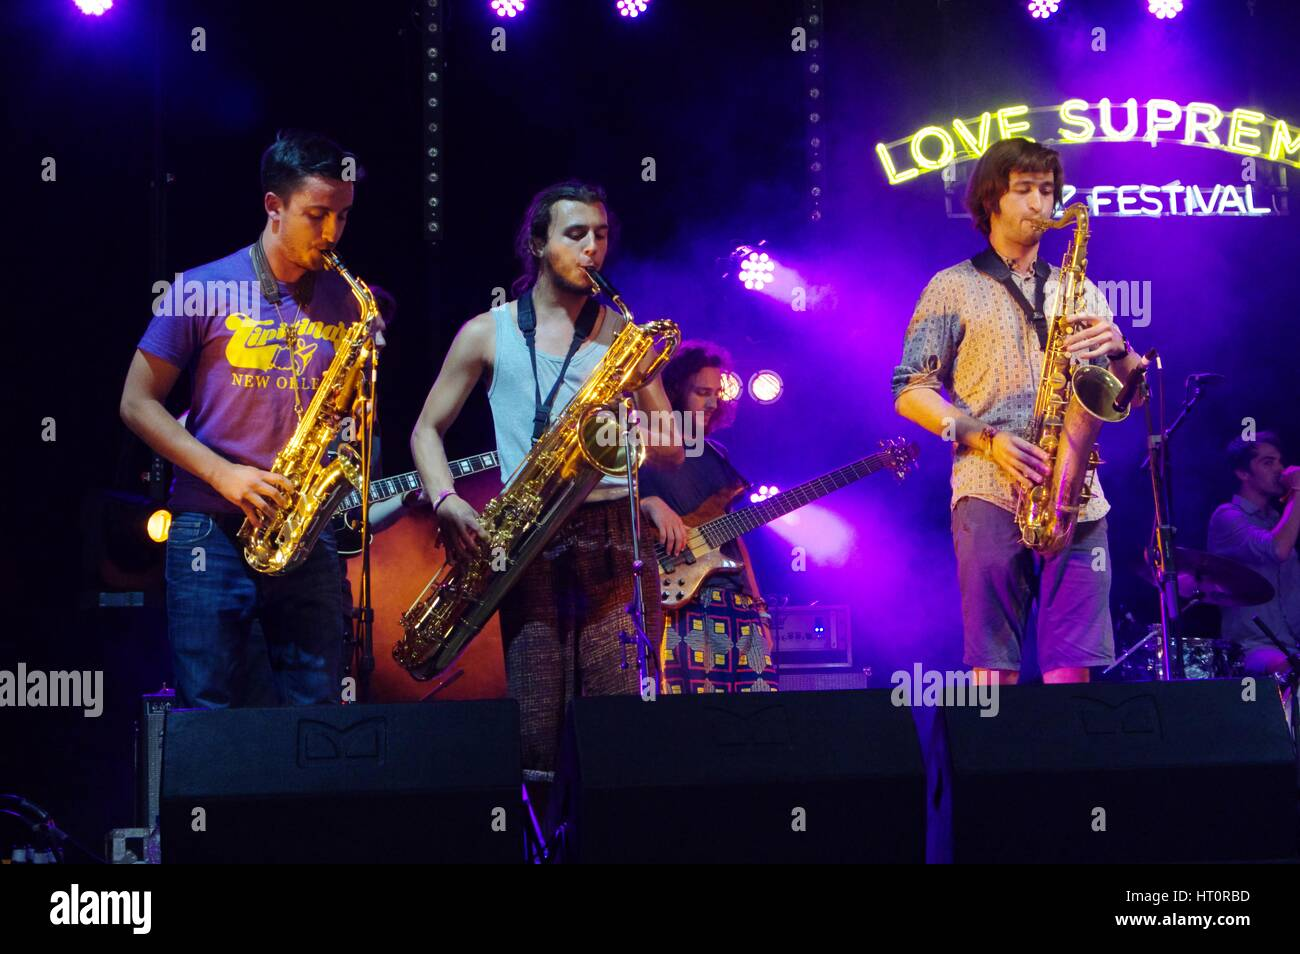 Mak Murtic, R Muscat and S Silas, Love Supreme Jazz Festival, Glynde Place, East Sussex, 2015. Artist: Brian O'Connor. - Stock Image